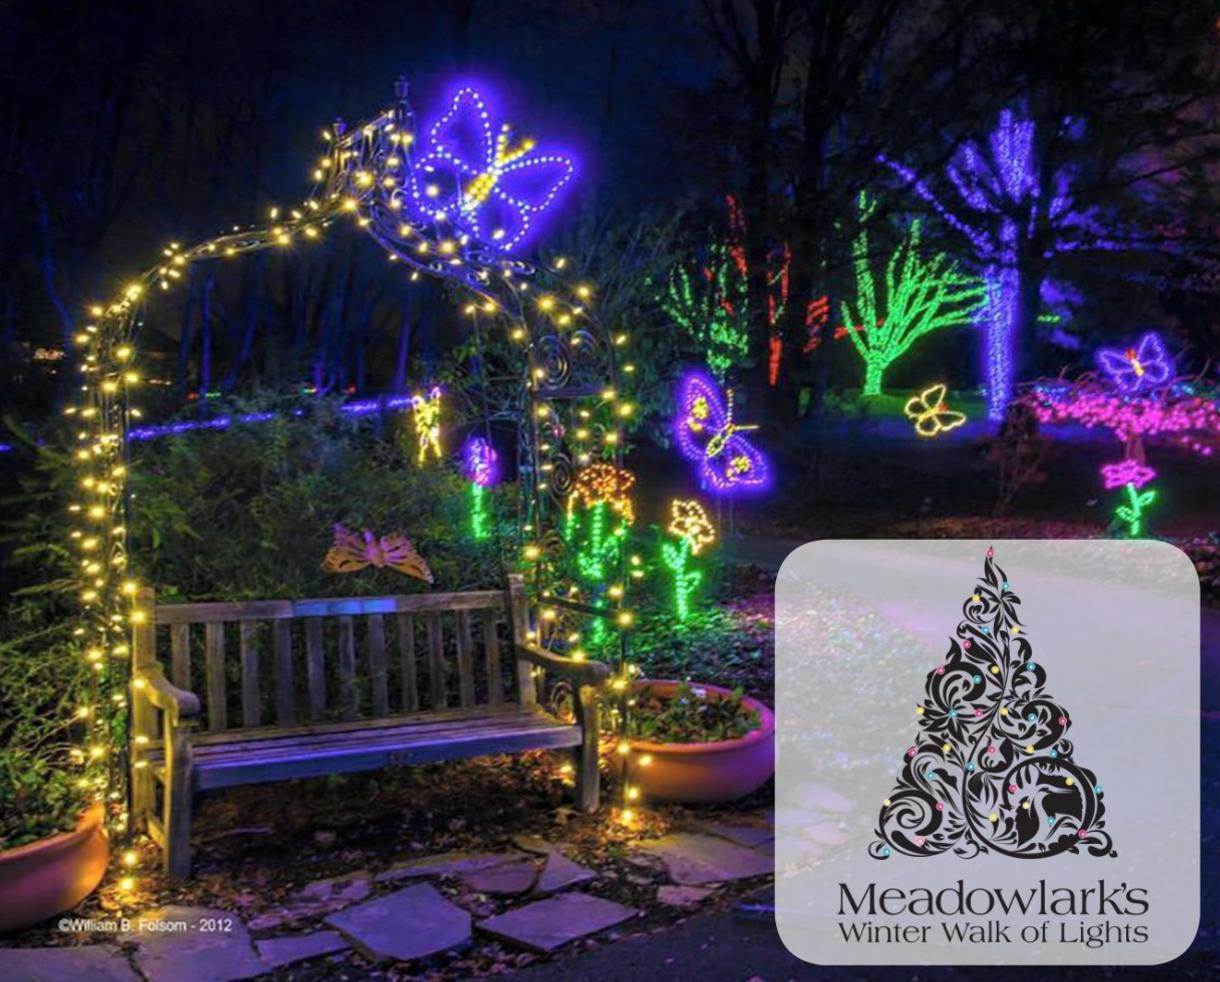 $16 for Meadowlark's Winter Walk of Lights Adult + Child Ticket: January 1 - 7, 2018 in Vienna, VA (31% Off)